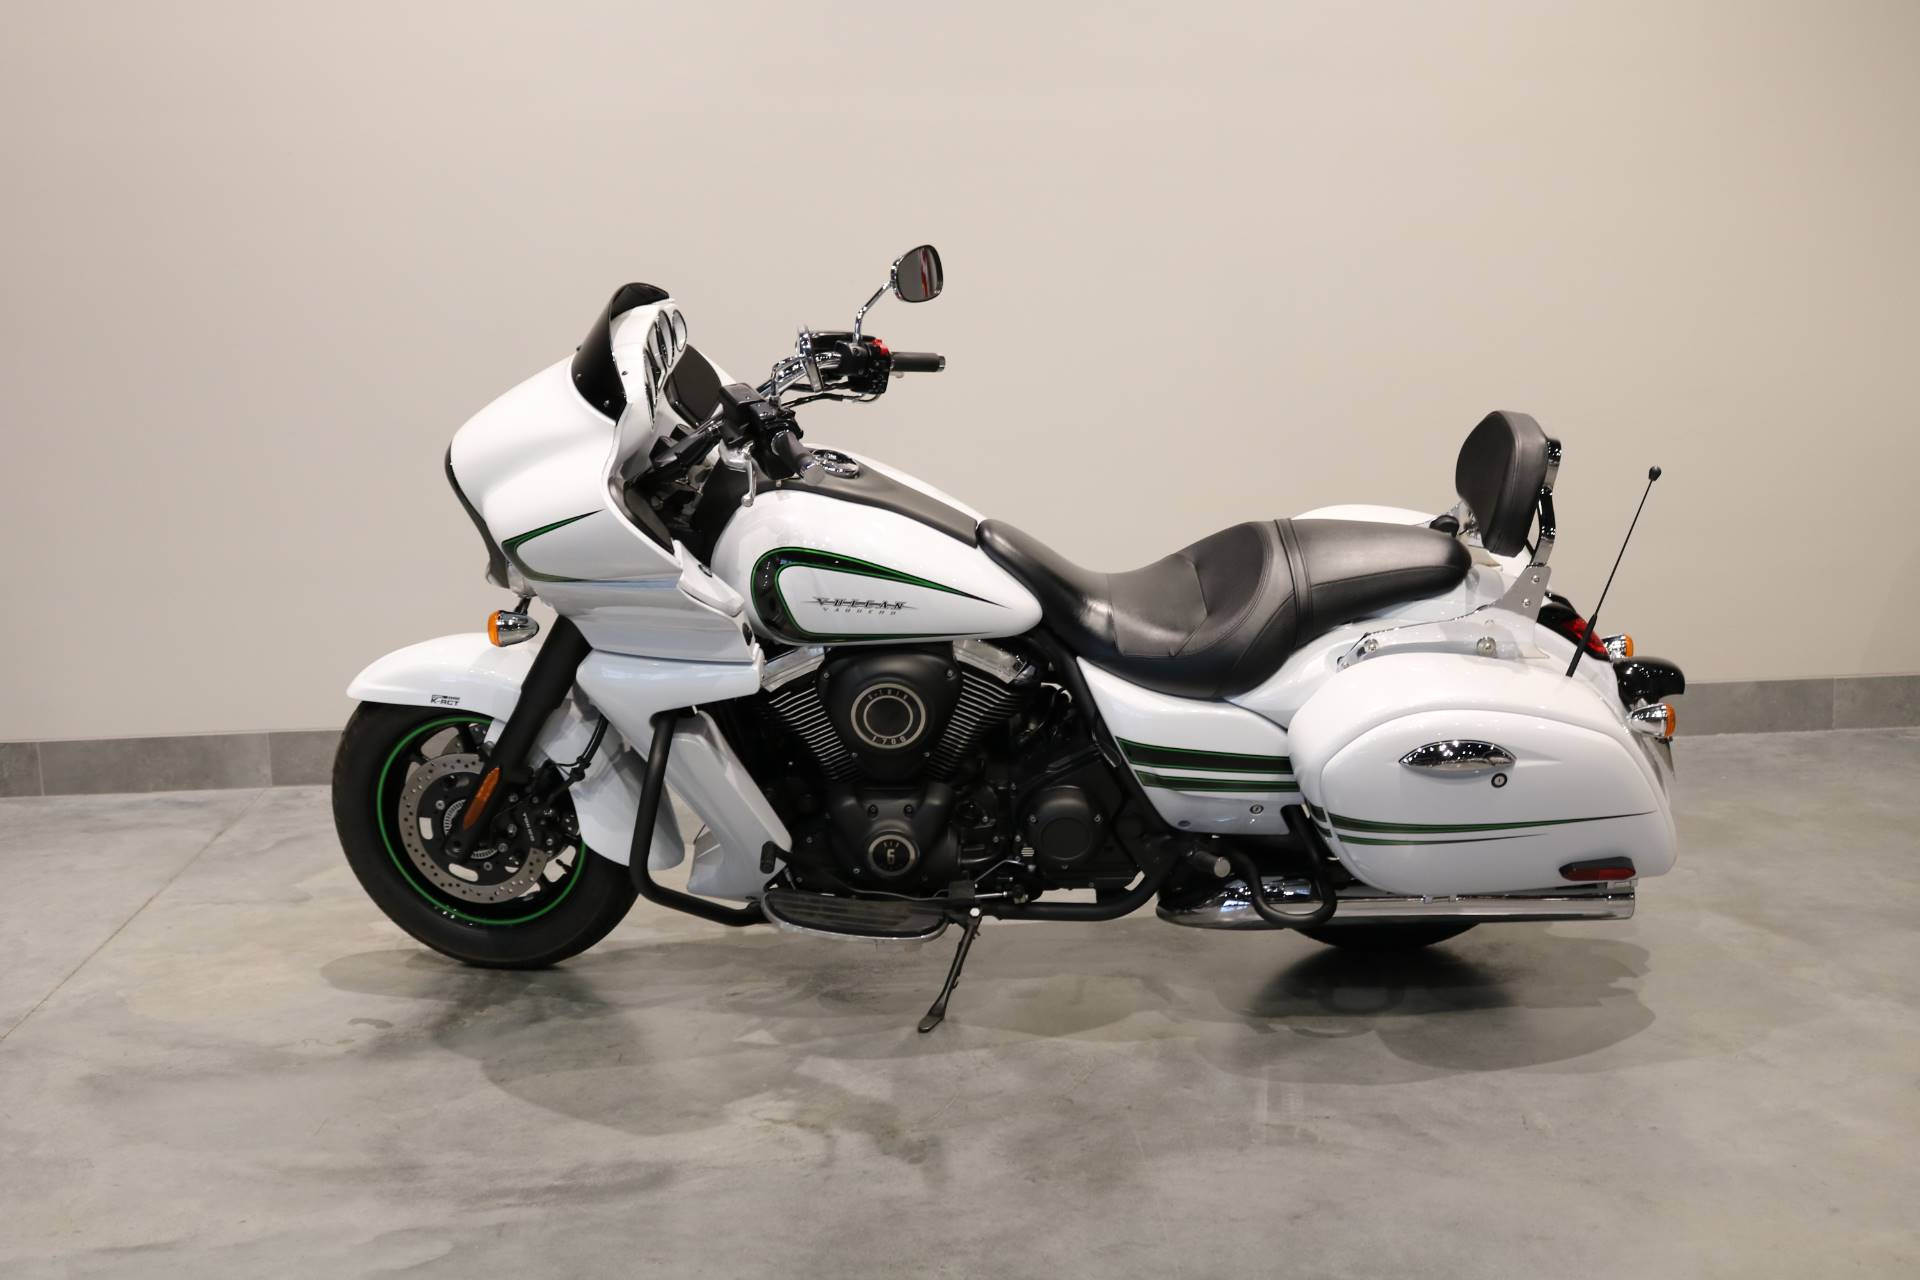 2016 Kawasaki Vulcan 1700 Vaquero ABS in Saint Paul, Minnesota - Photo 2